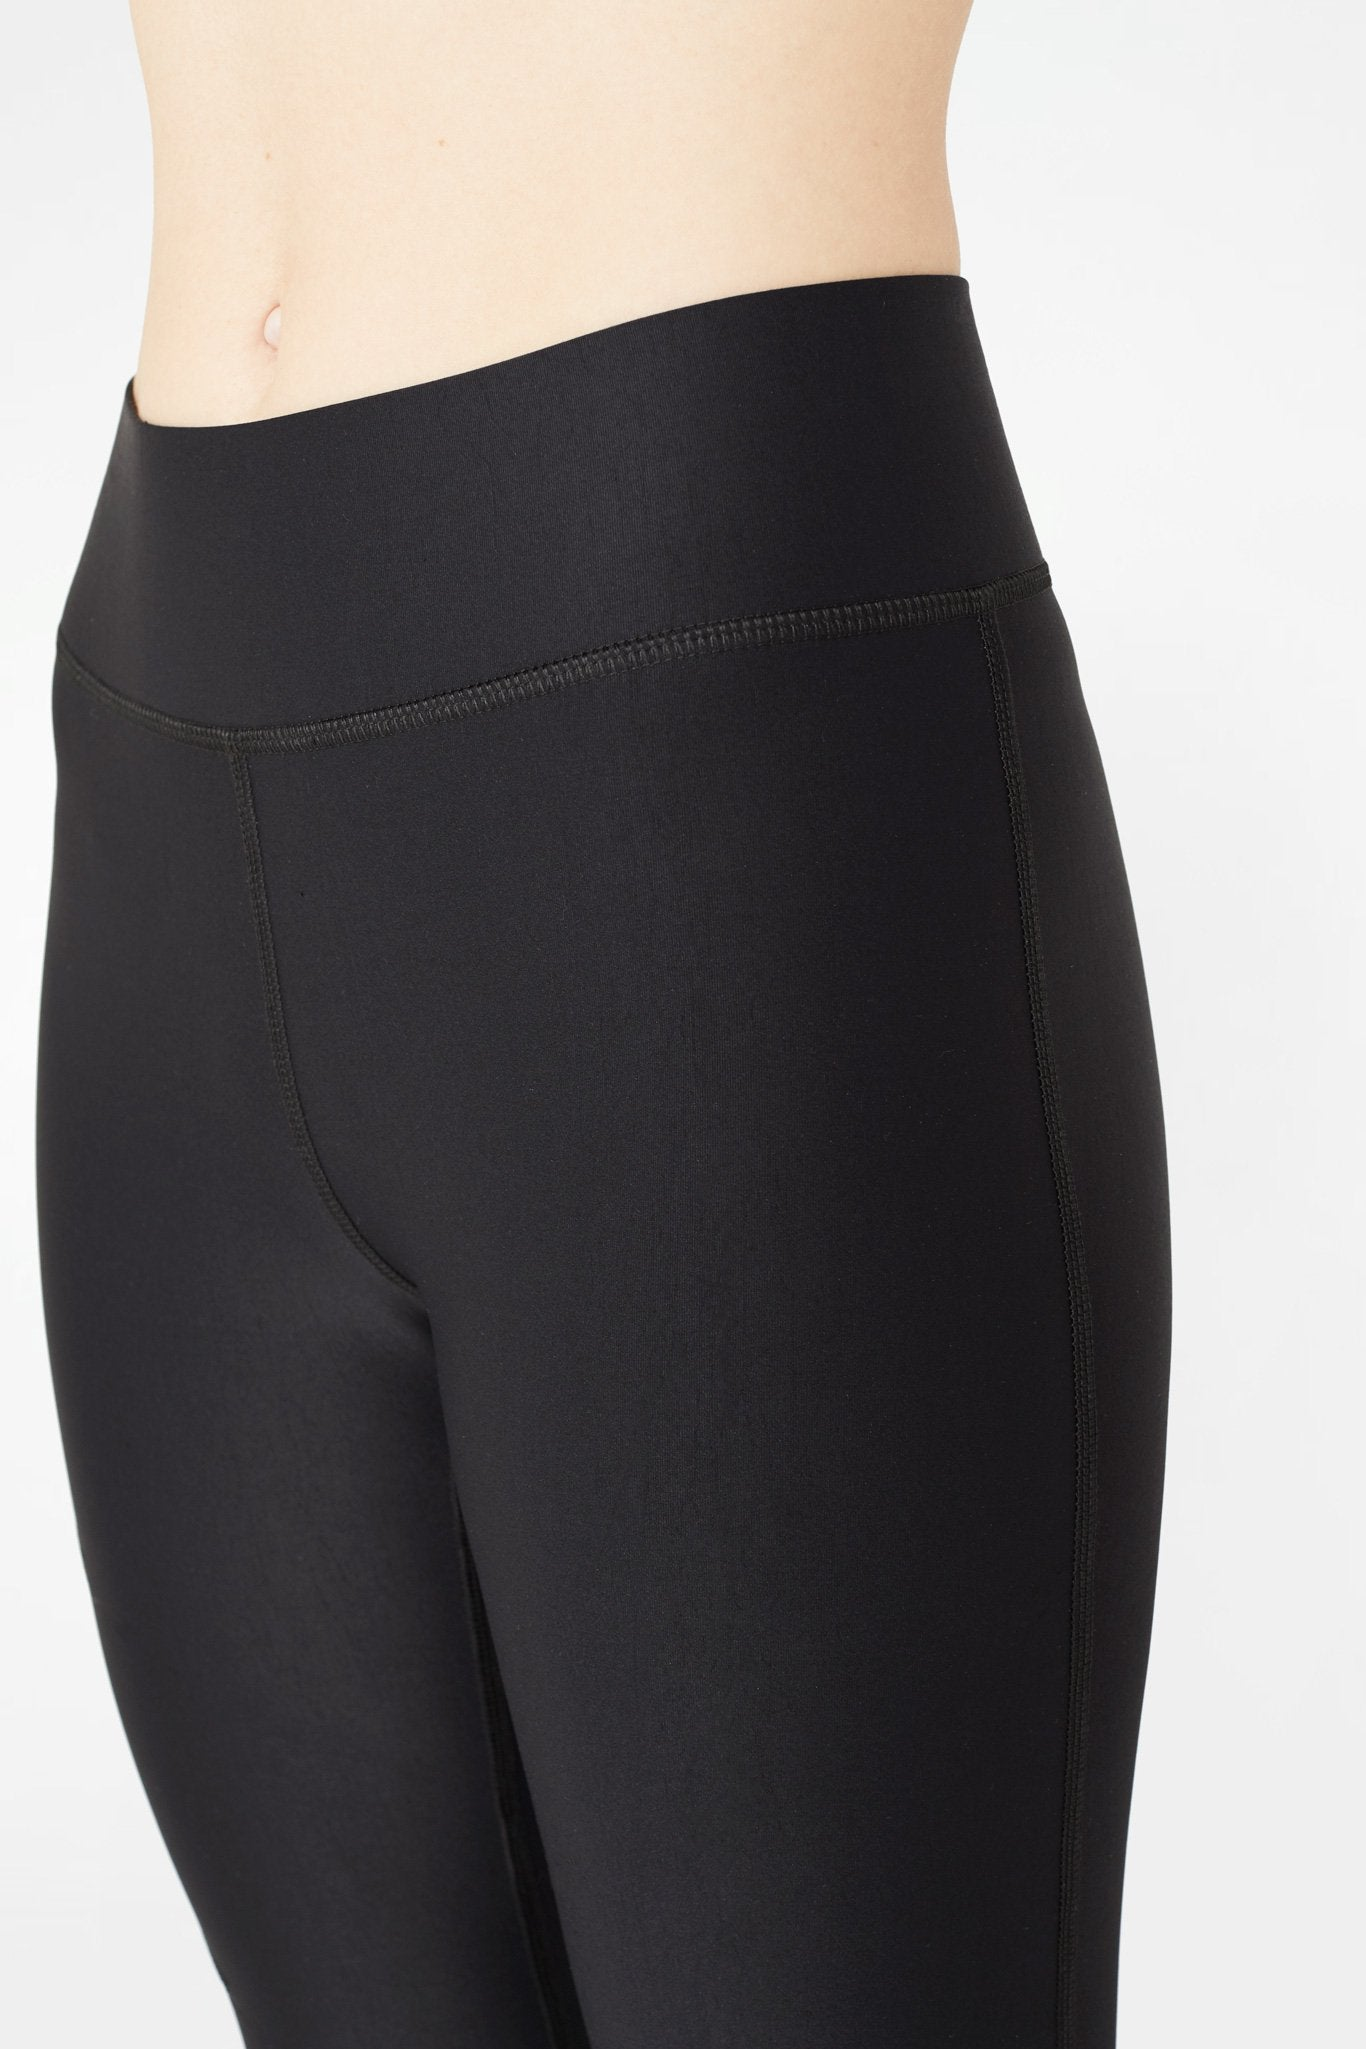 Black Zipper UpLift Leggings